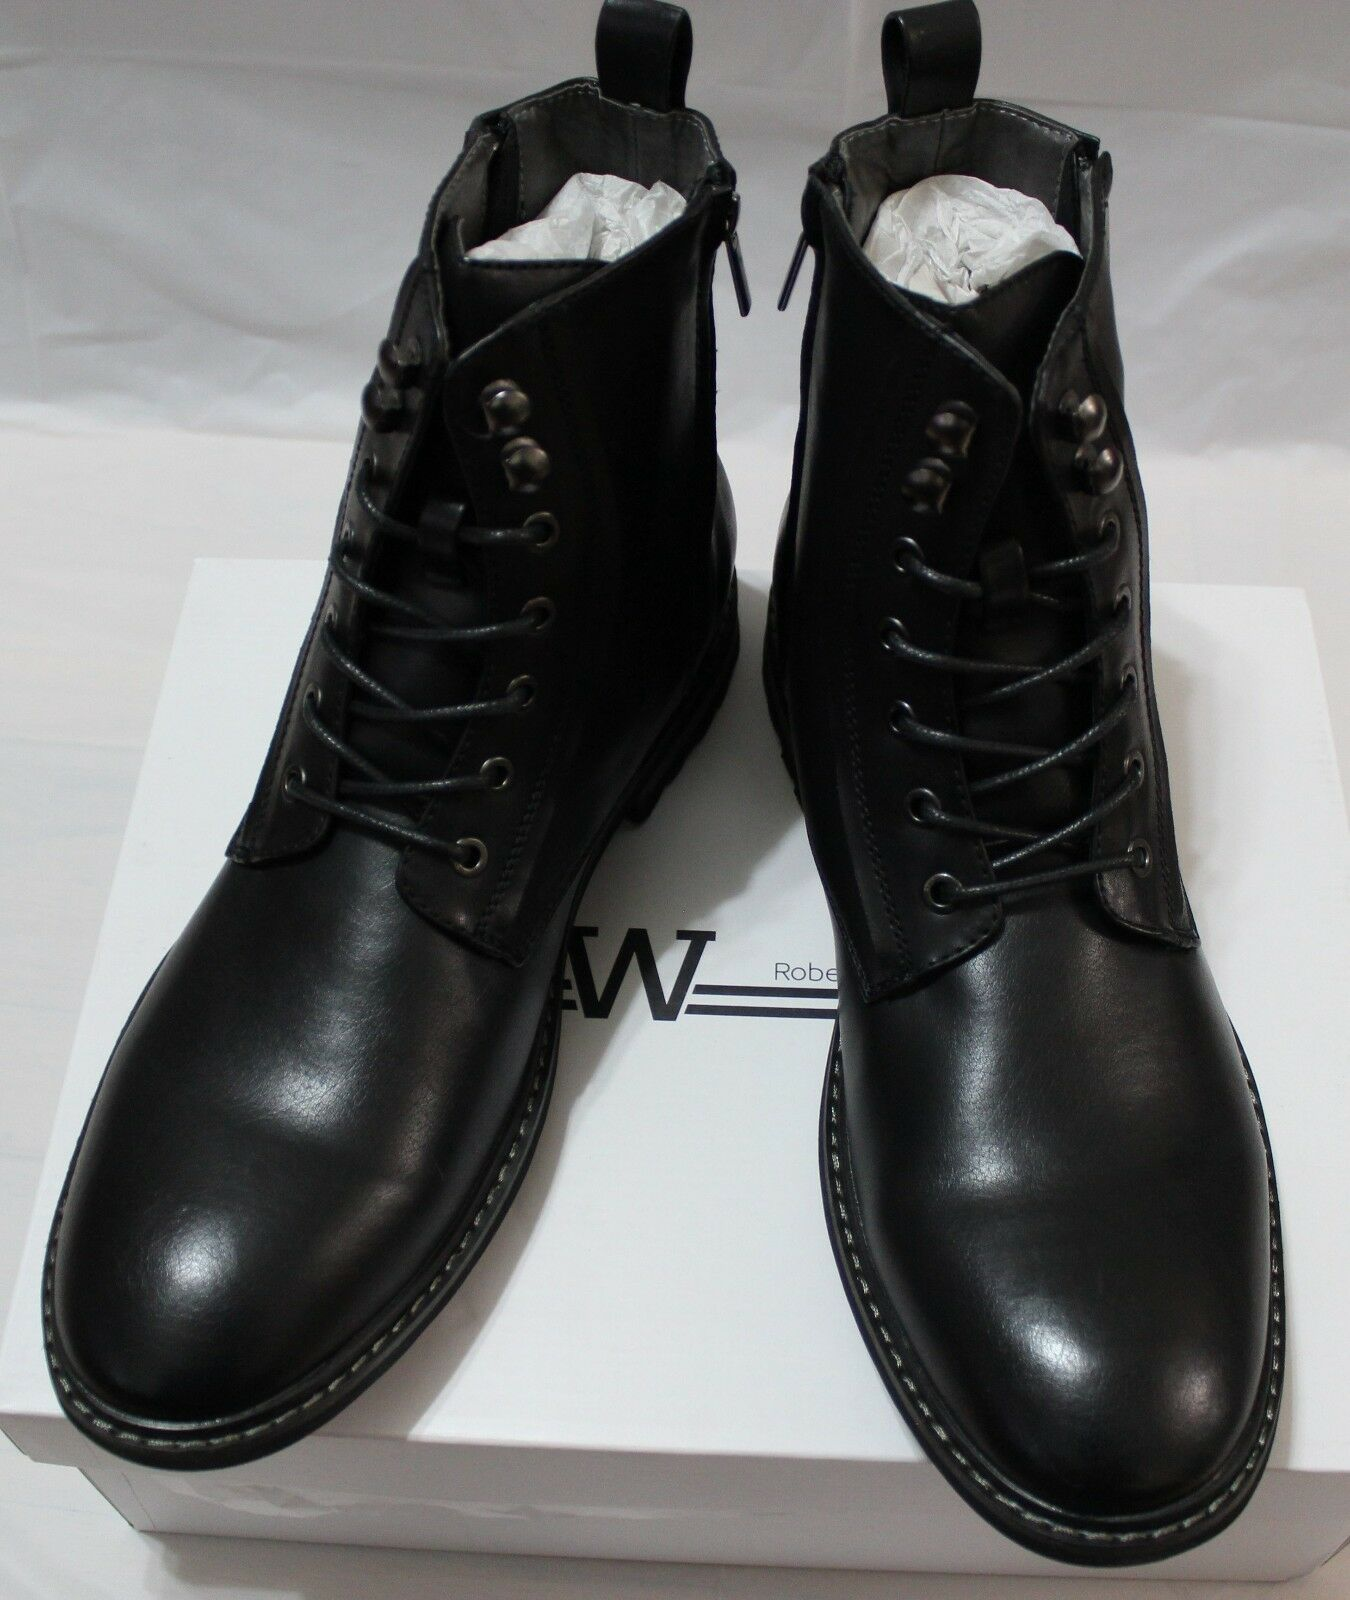 90 ROBERT WAYNE THATCHER BLACK ANKLE BOOT